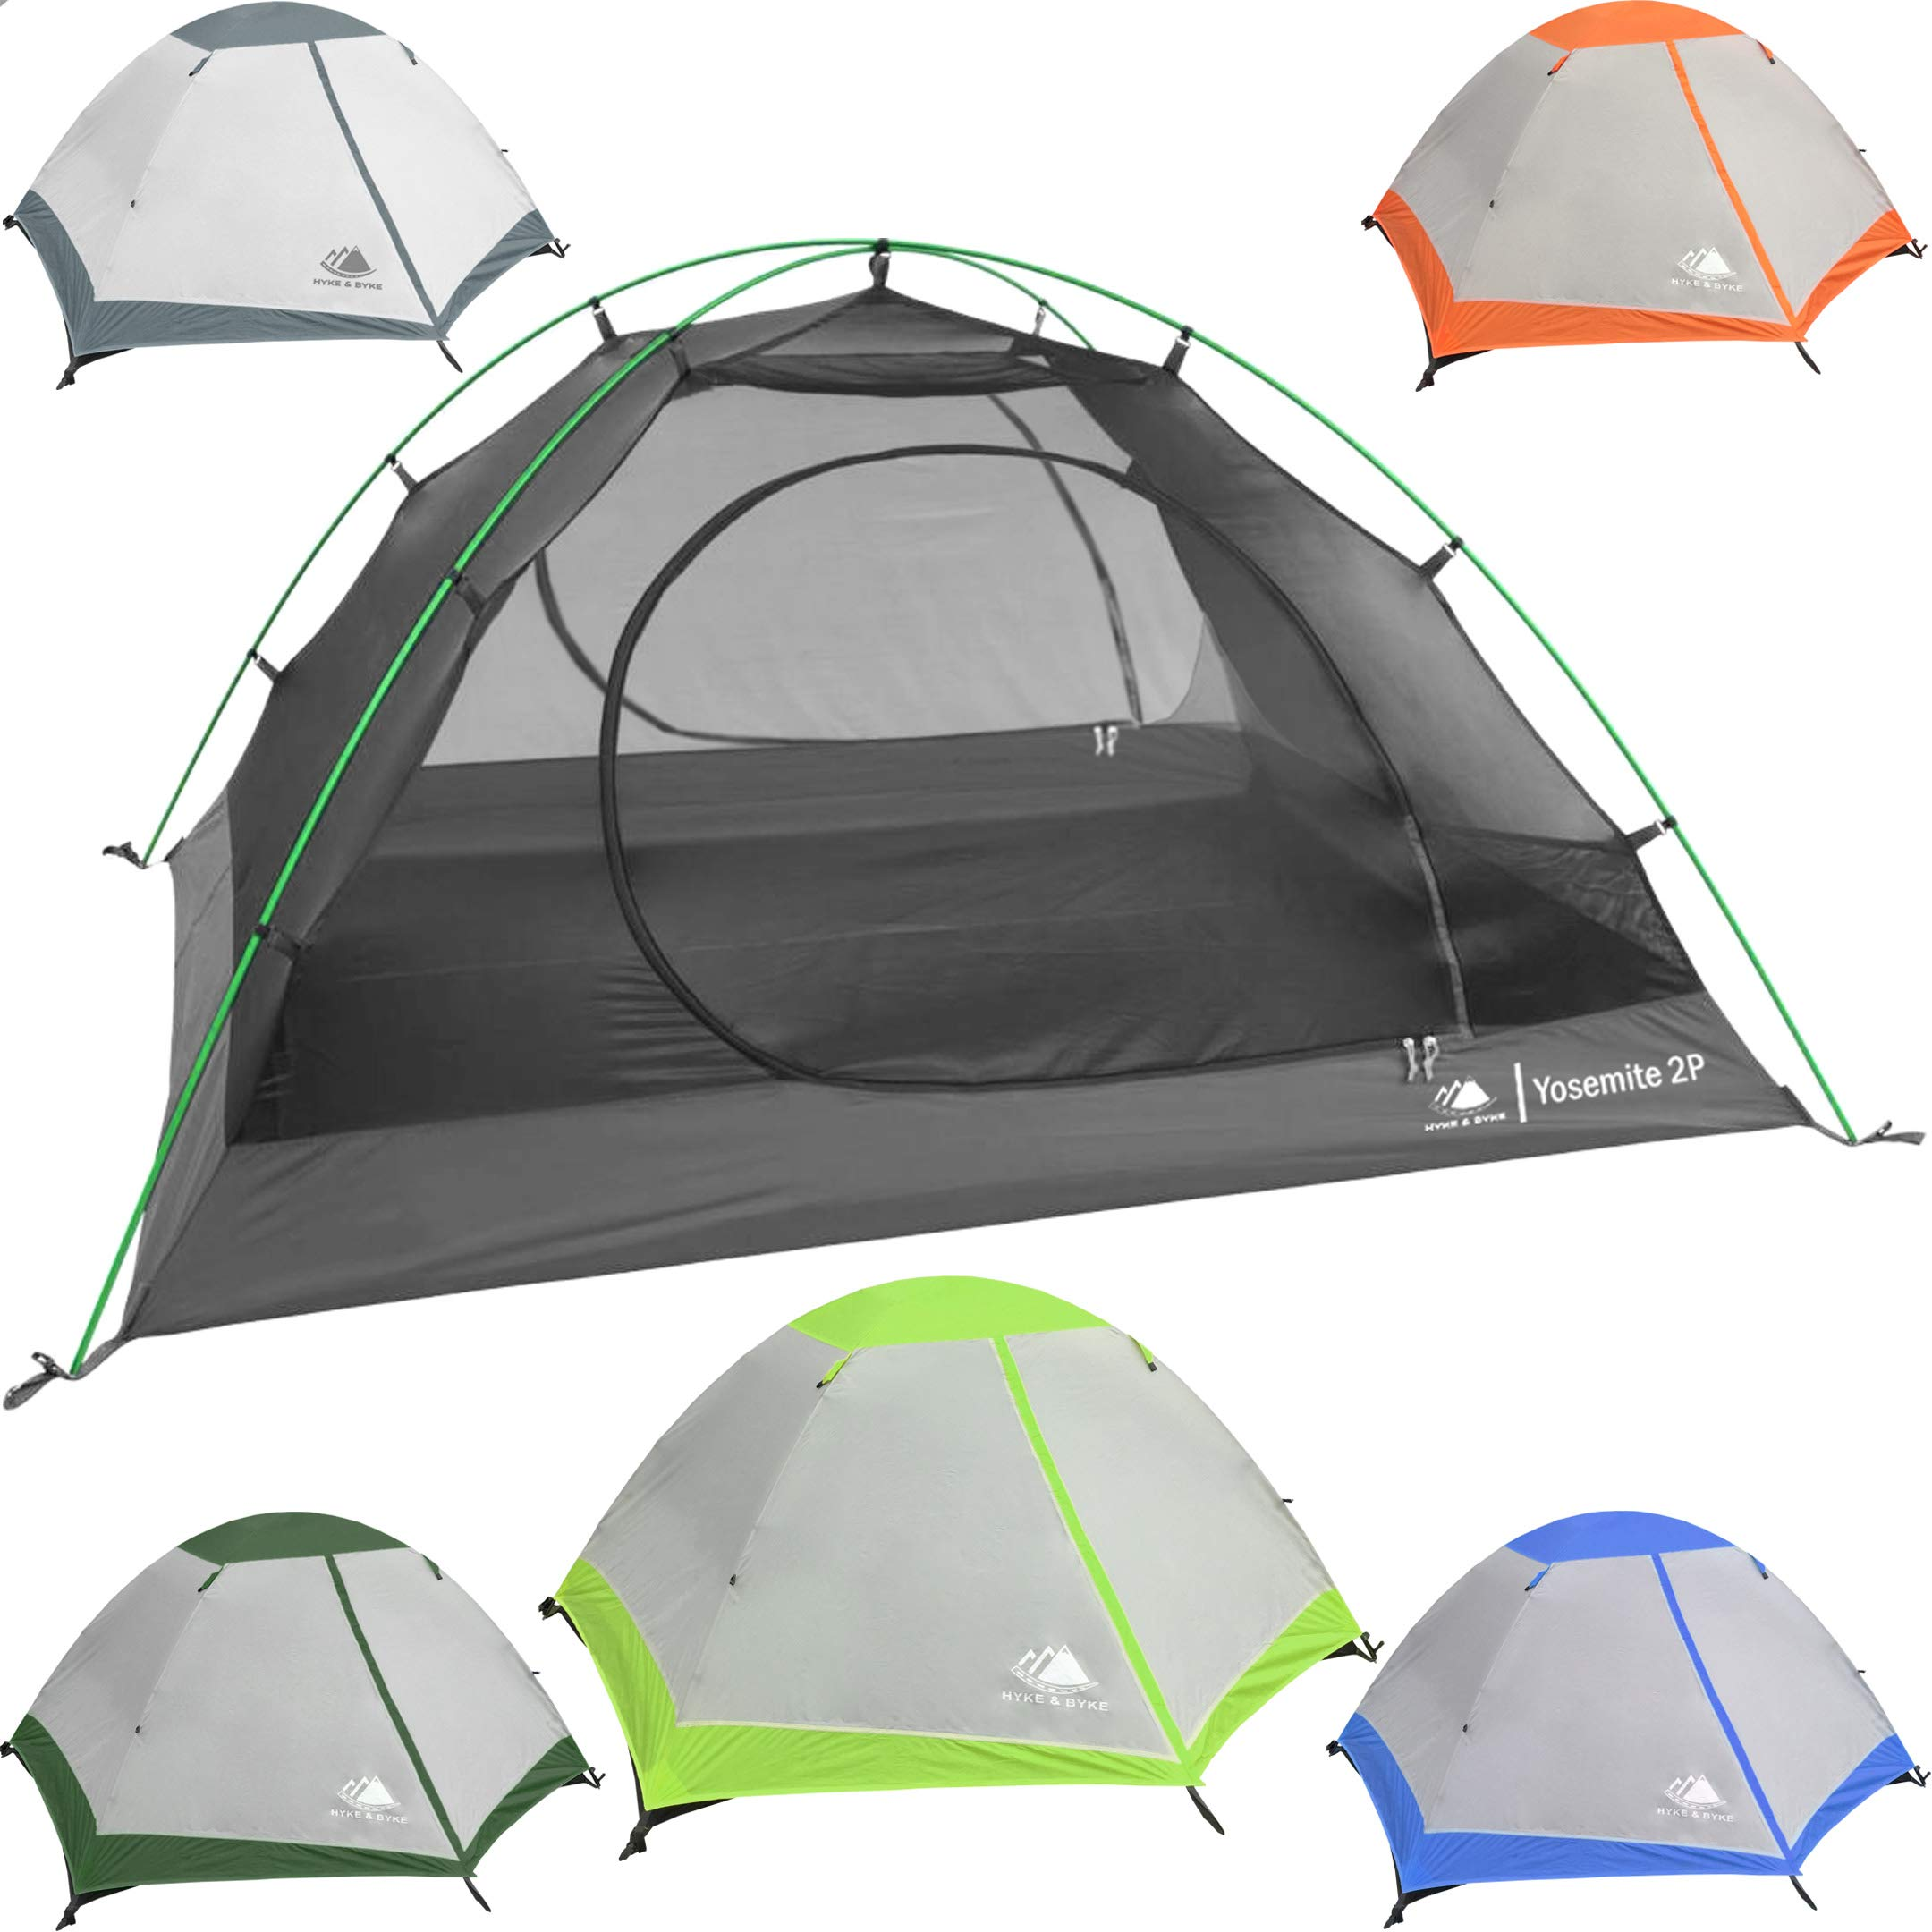 Hyke & Byke 2 Person Backpacking Tent with Footprint - Lightweight Yosemite Two Man 3 Season Ultralight, Waterproof, Ultra Compact 2p Freestanding Backpack Tents for Camping and Hiking (Lime Green) by Hyke & Byke